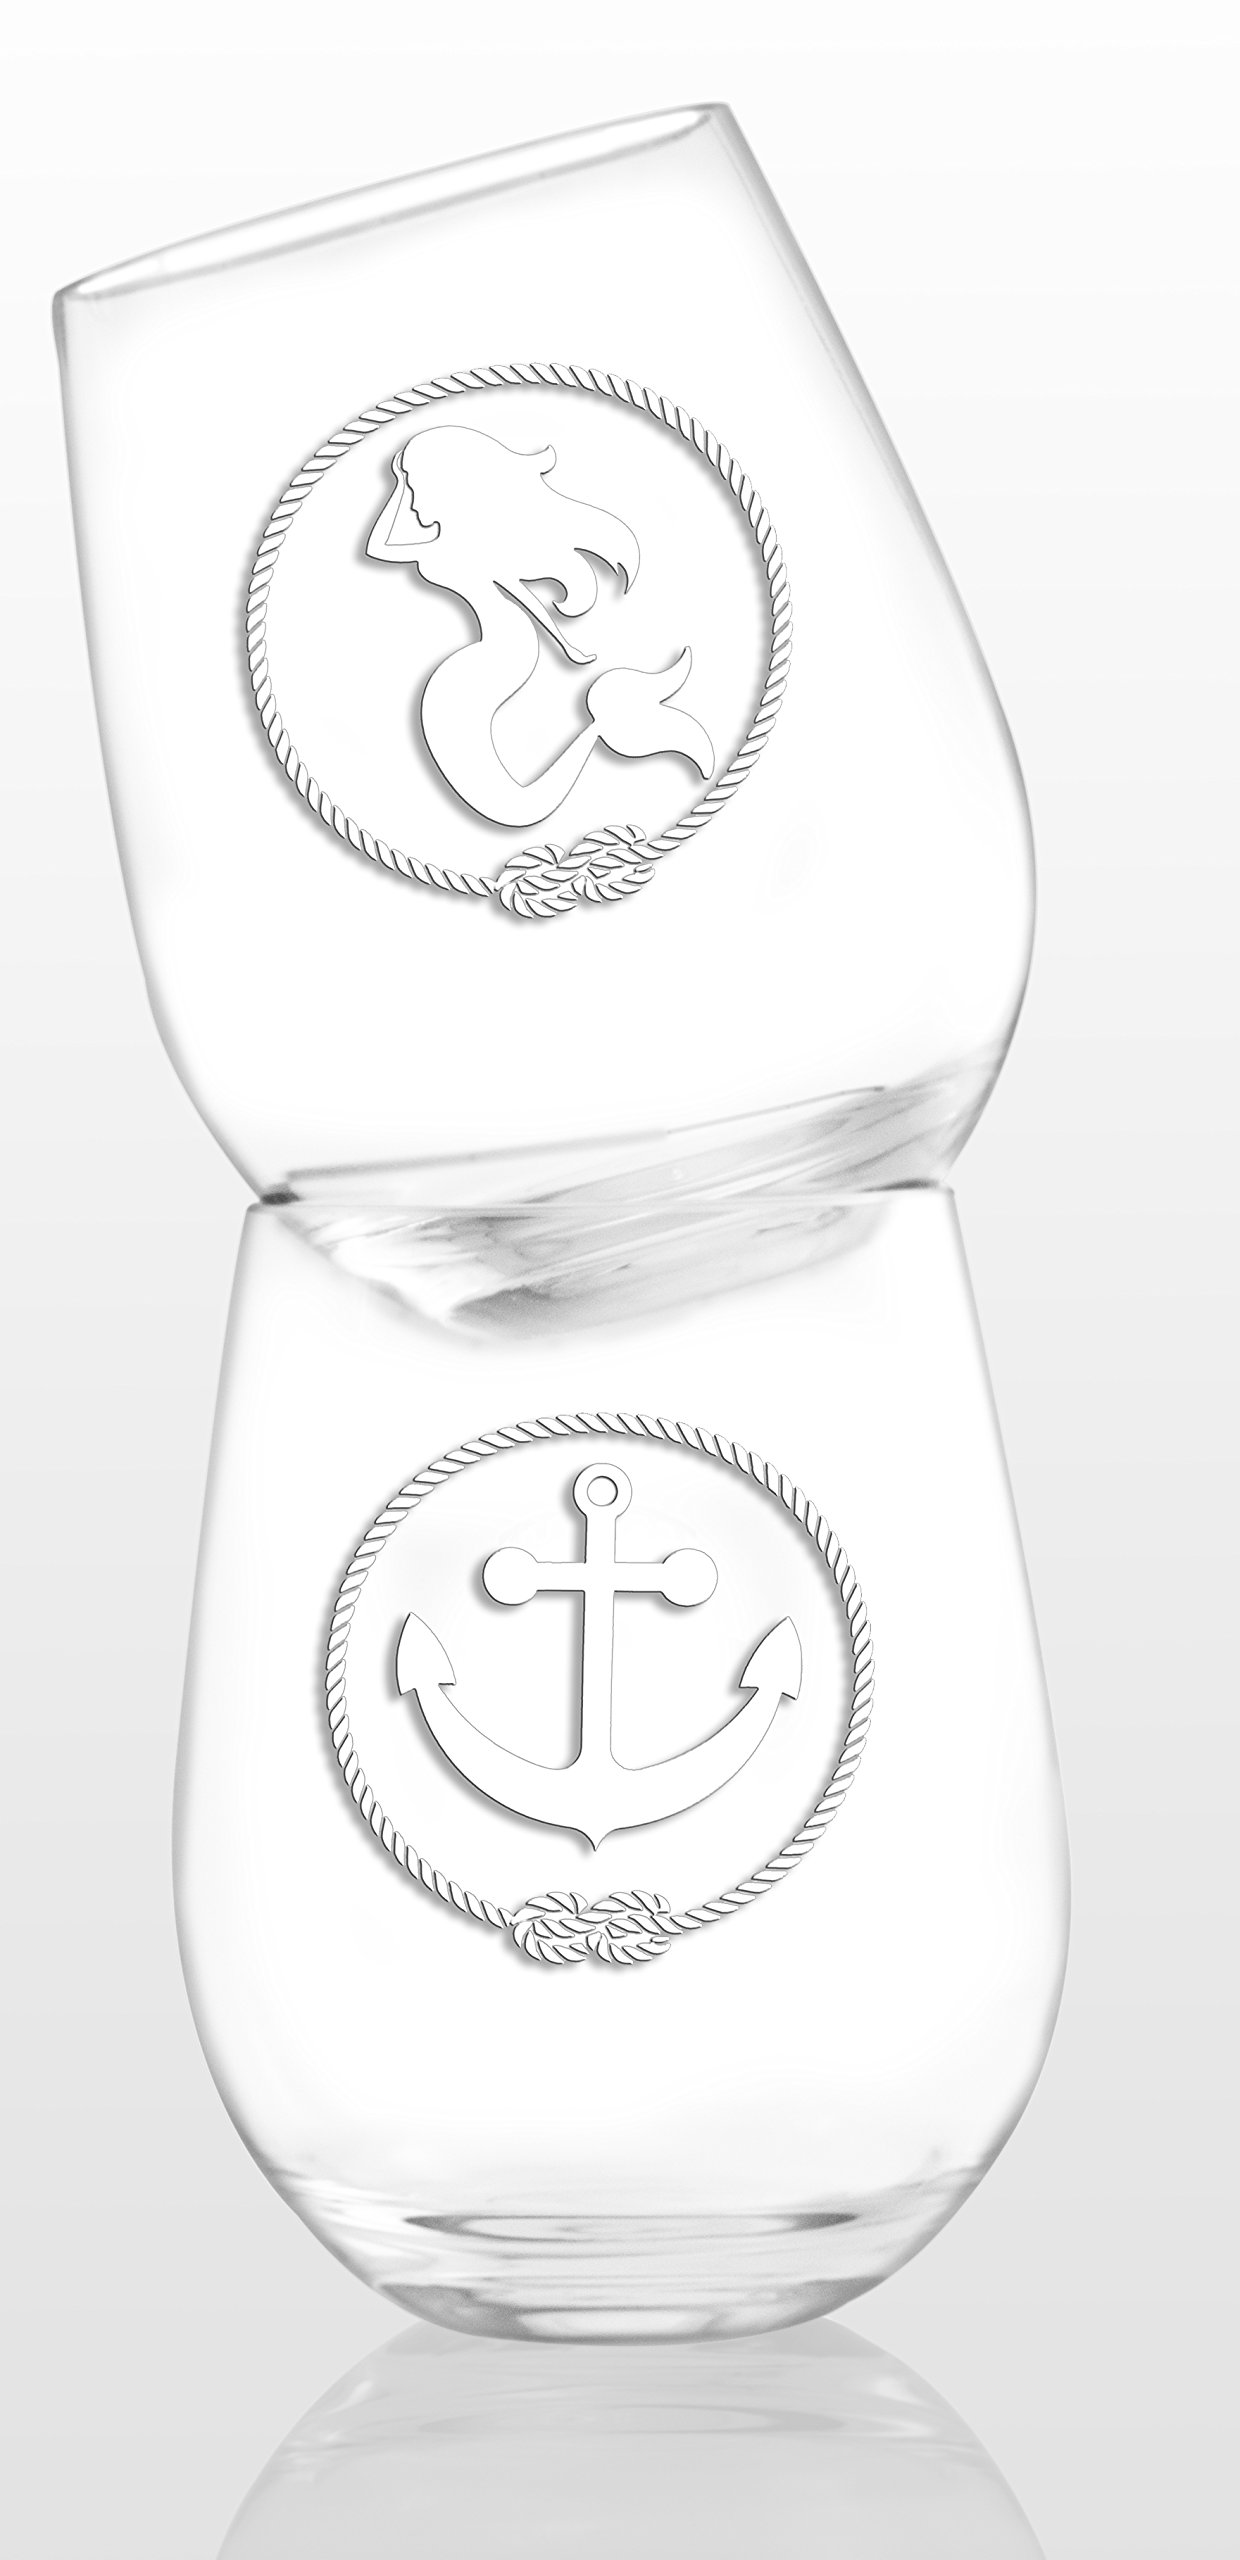 SET OF 6 -Stemless Wine Glasses-Nautical Themed, Resturant Quility Plastic, 14oz, Best Shatter Proof Drinking Glass for Wine, Cocktails or gifts by DaJosie Co. (Image #4)